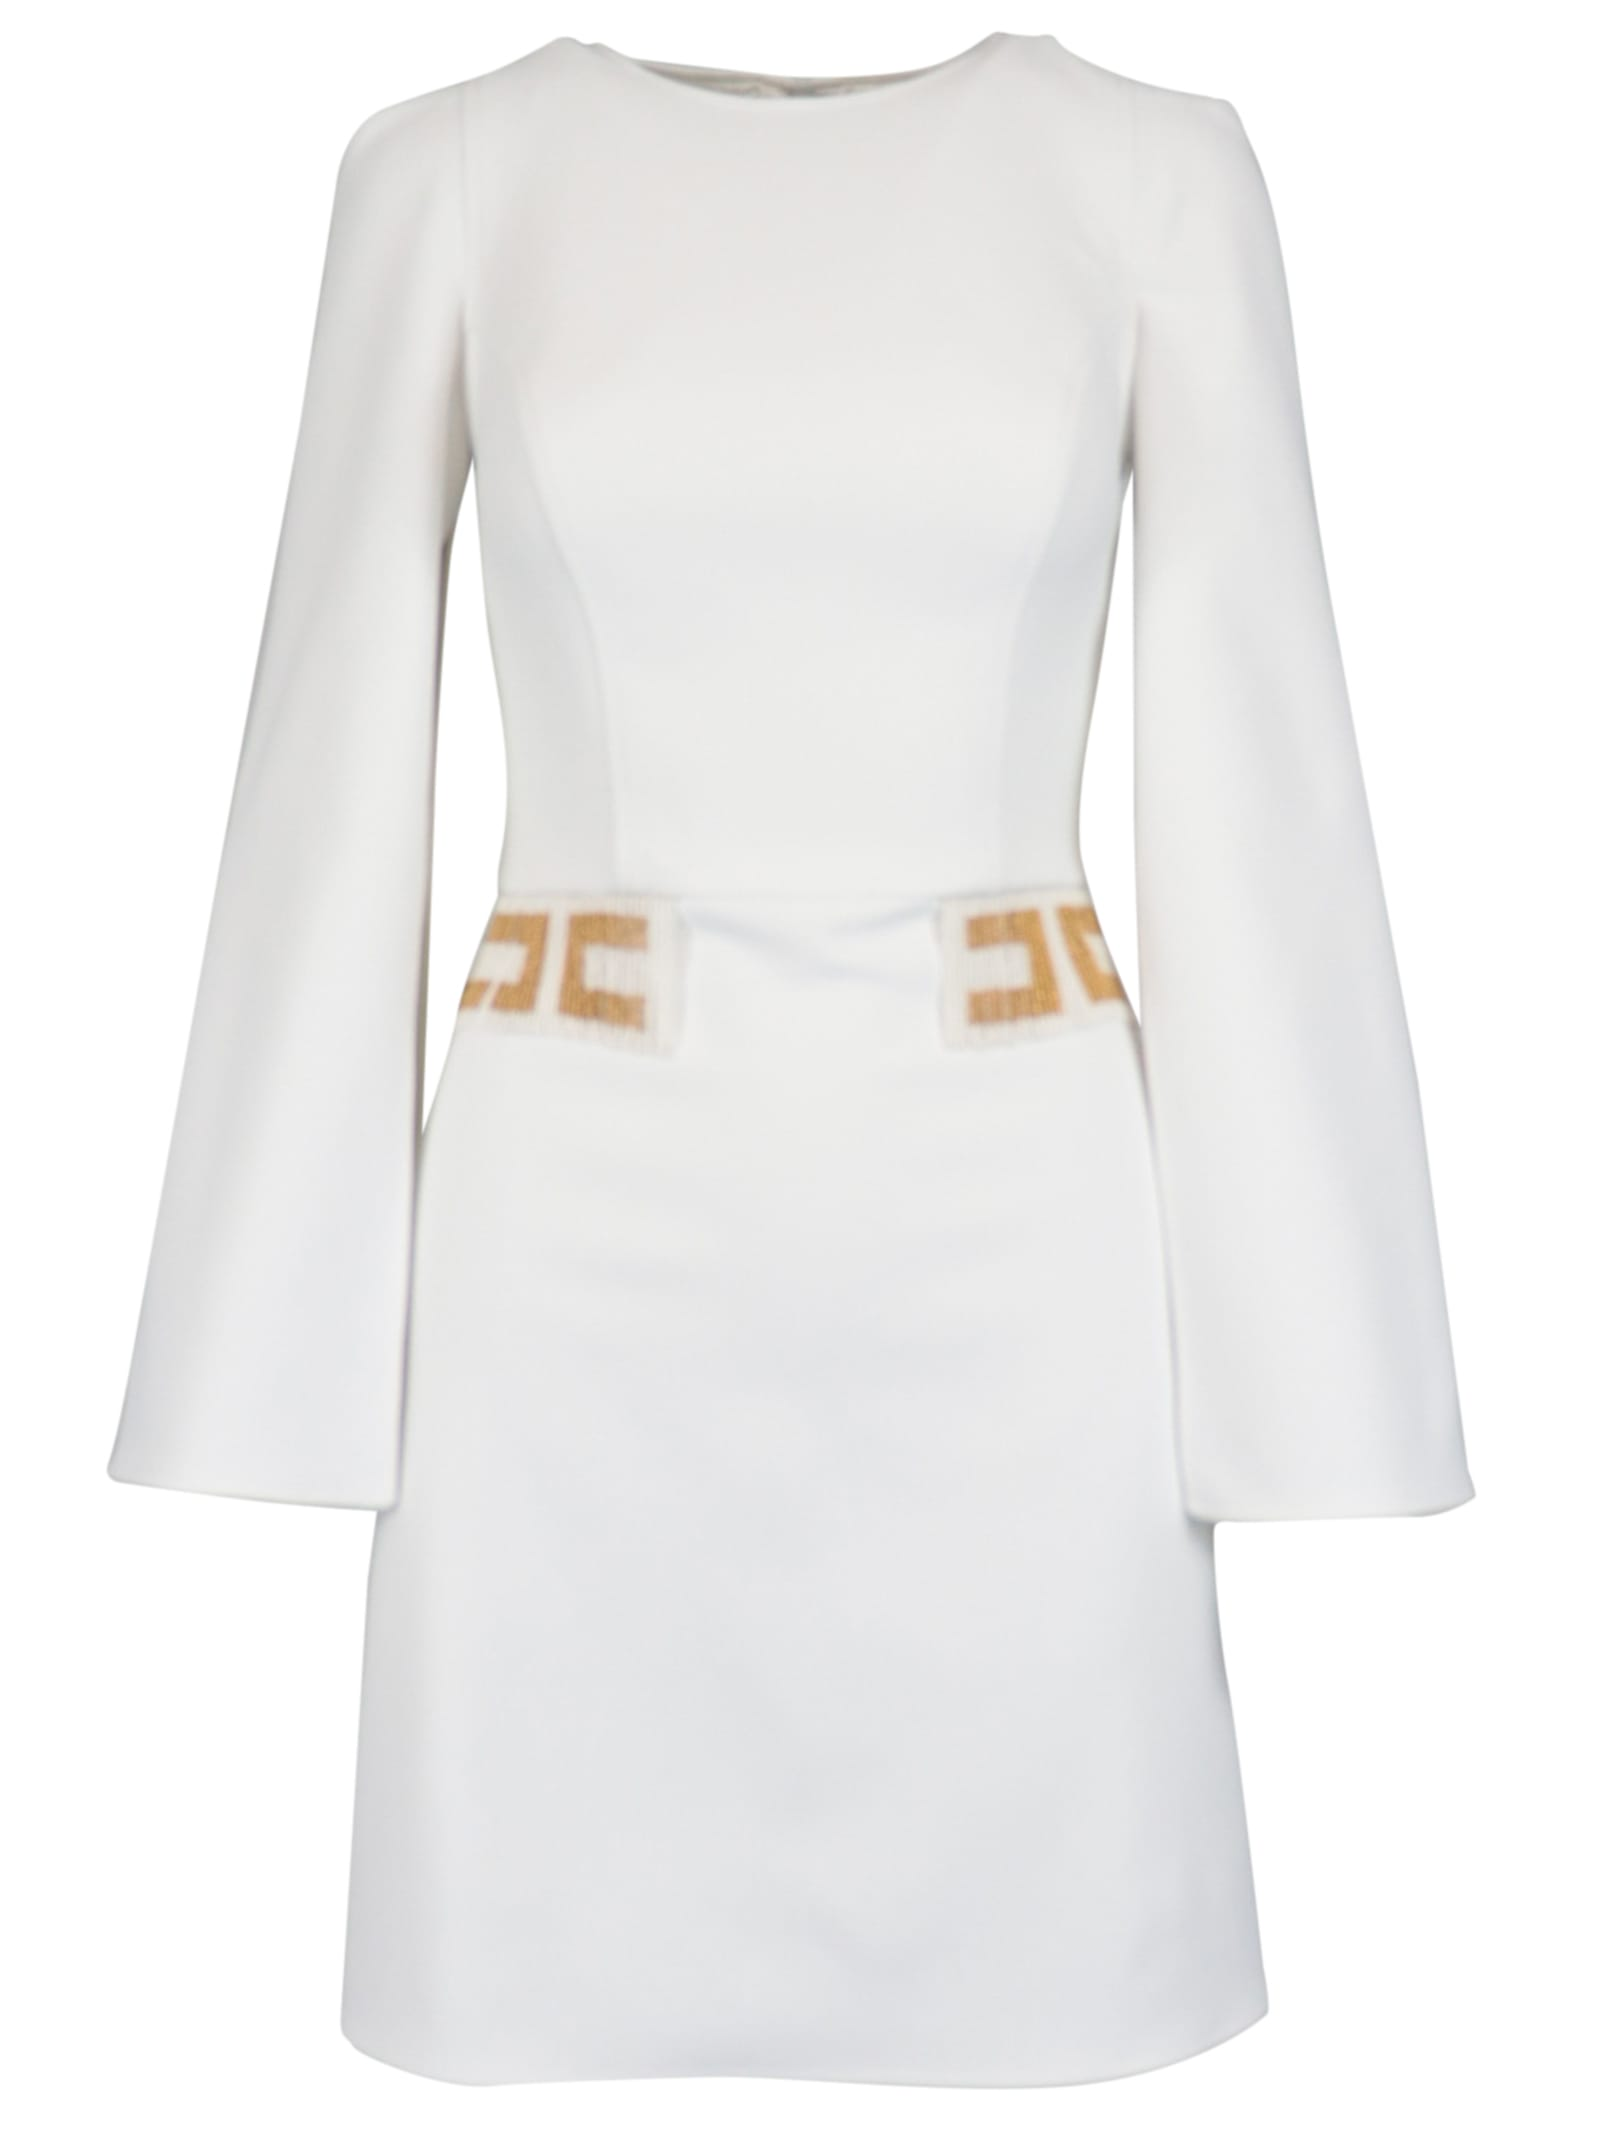 Buy Elisabetta Franchi Celyn B. Crepe Logo Dress online, shop Elisabetta Franchi Celyn B. with free shipping